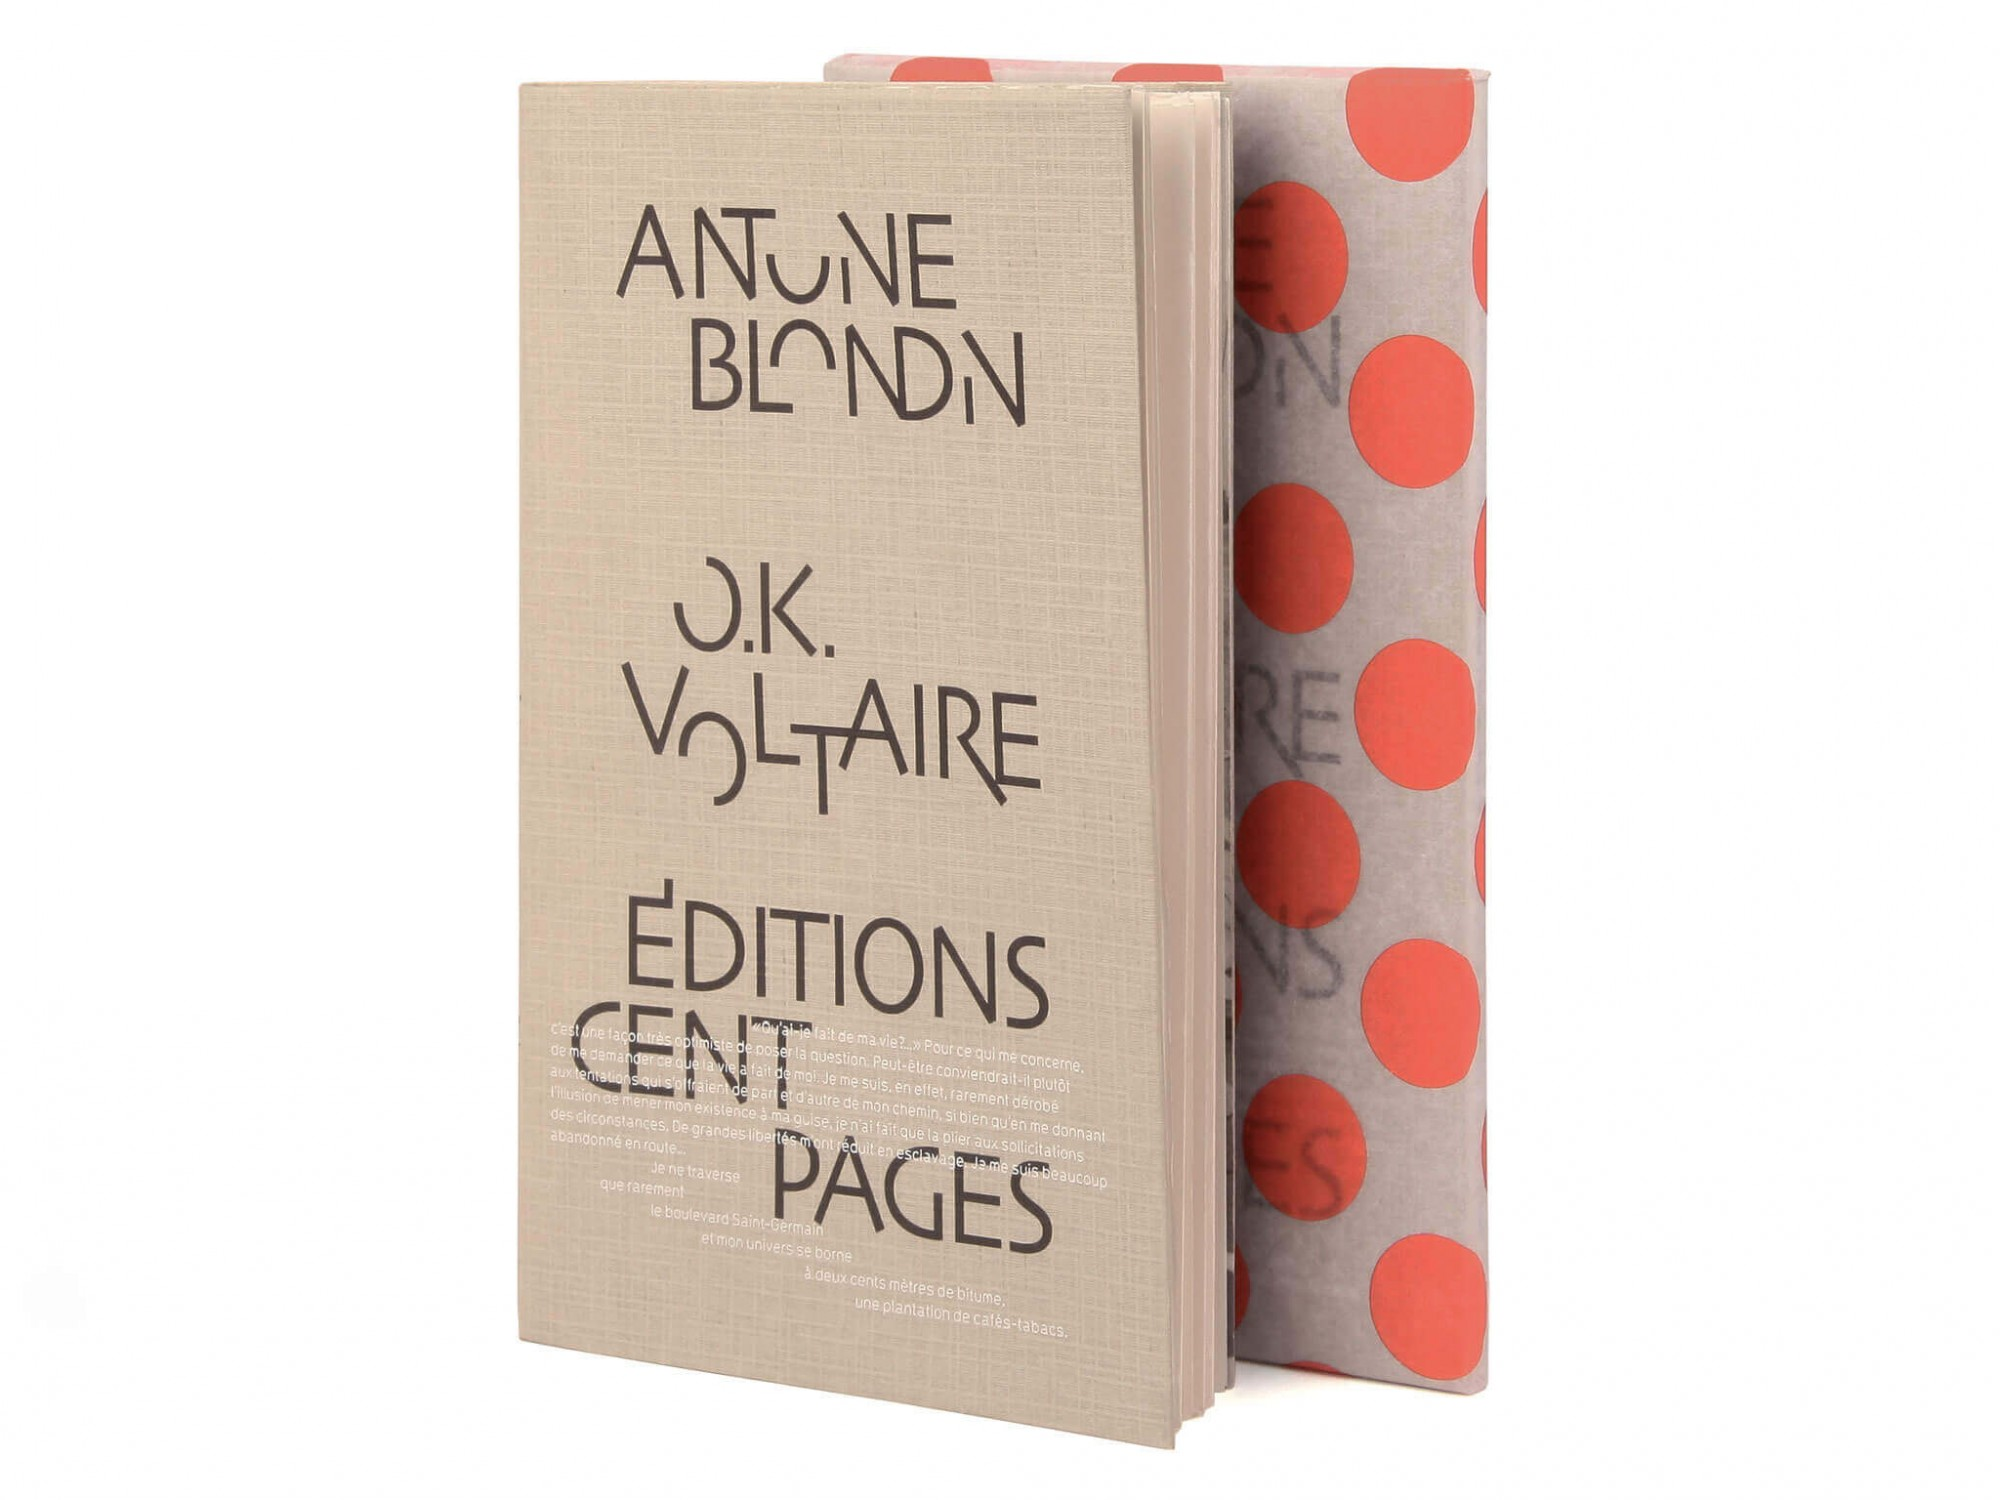 Antoine Blondin O.K. Voltaire Éditions cent pages collection Rouge-Gorge